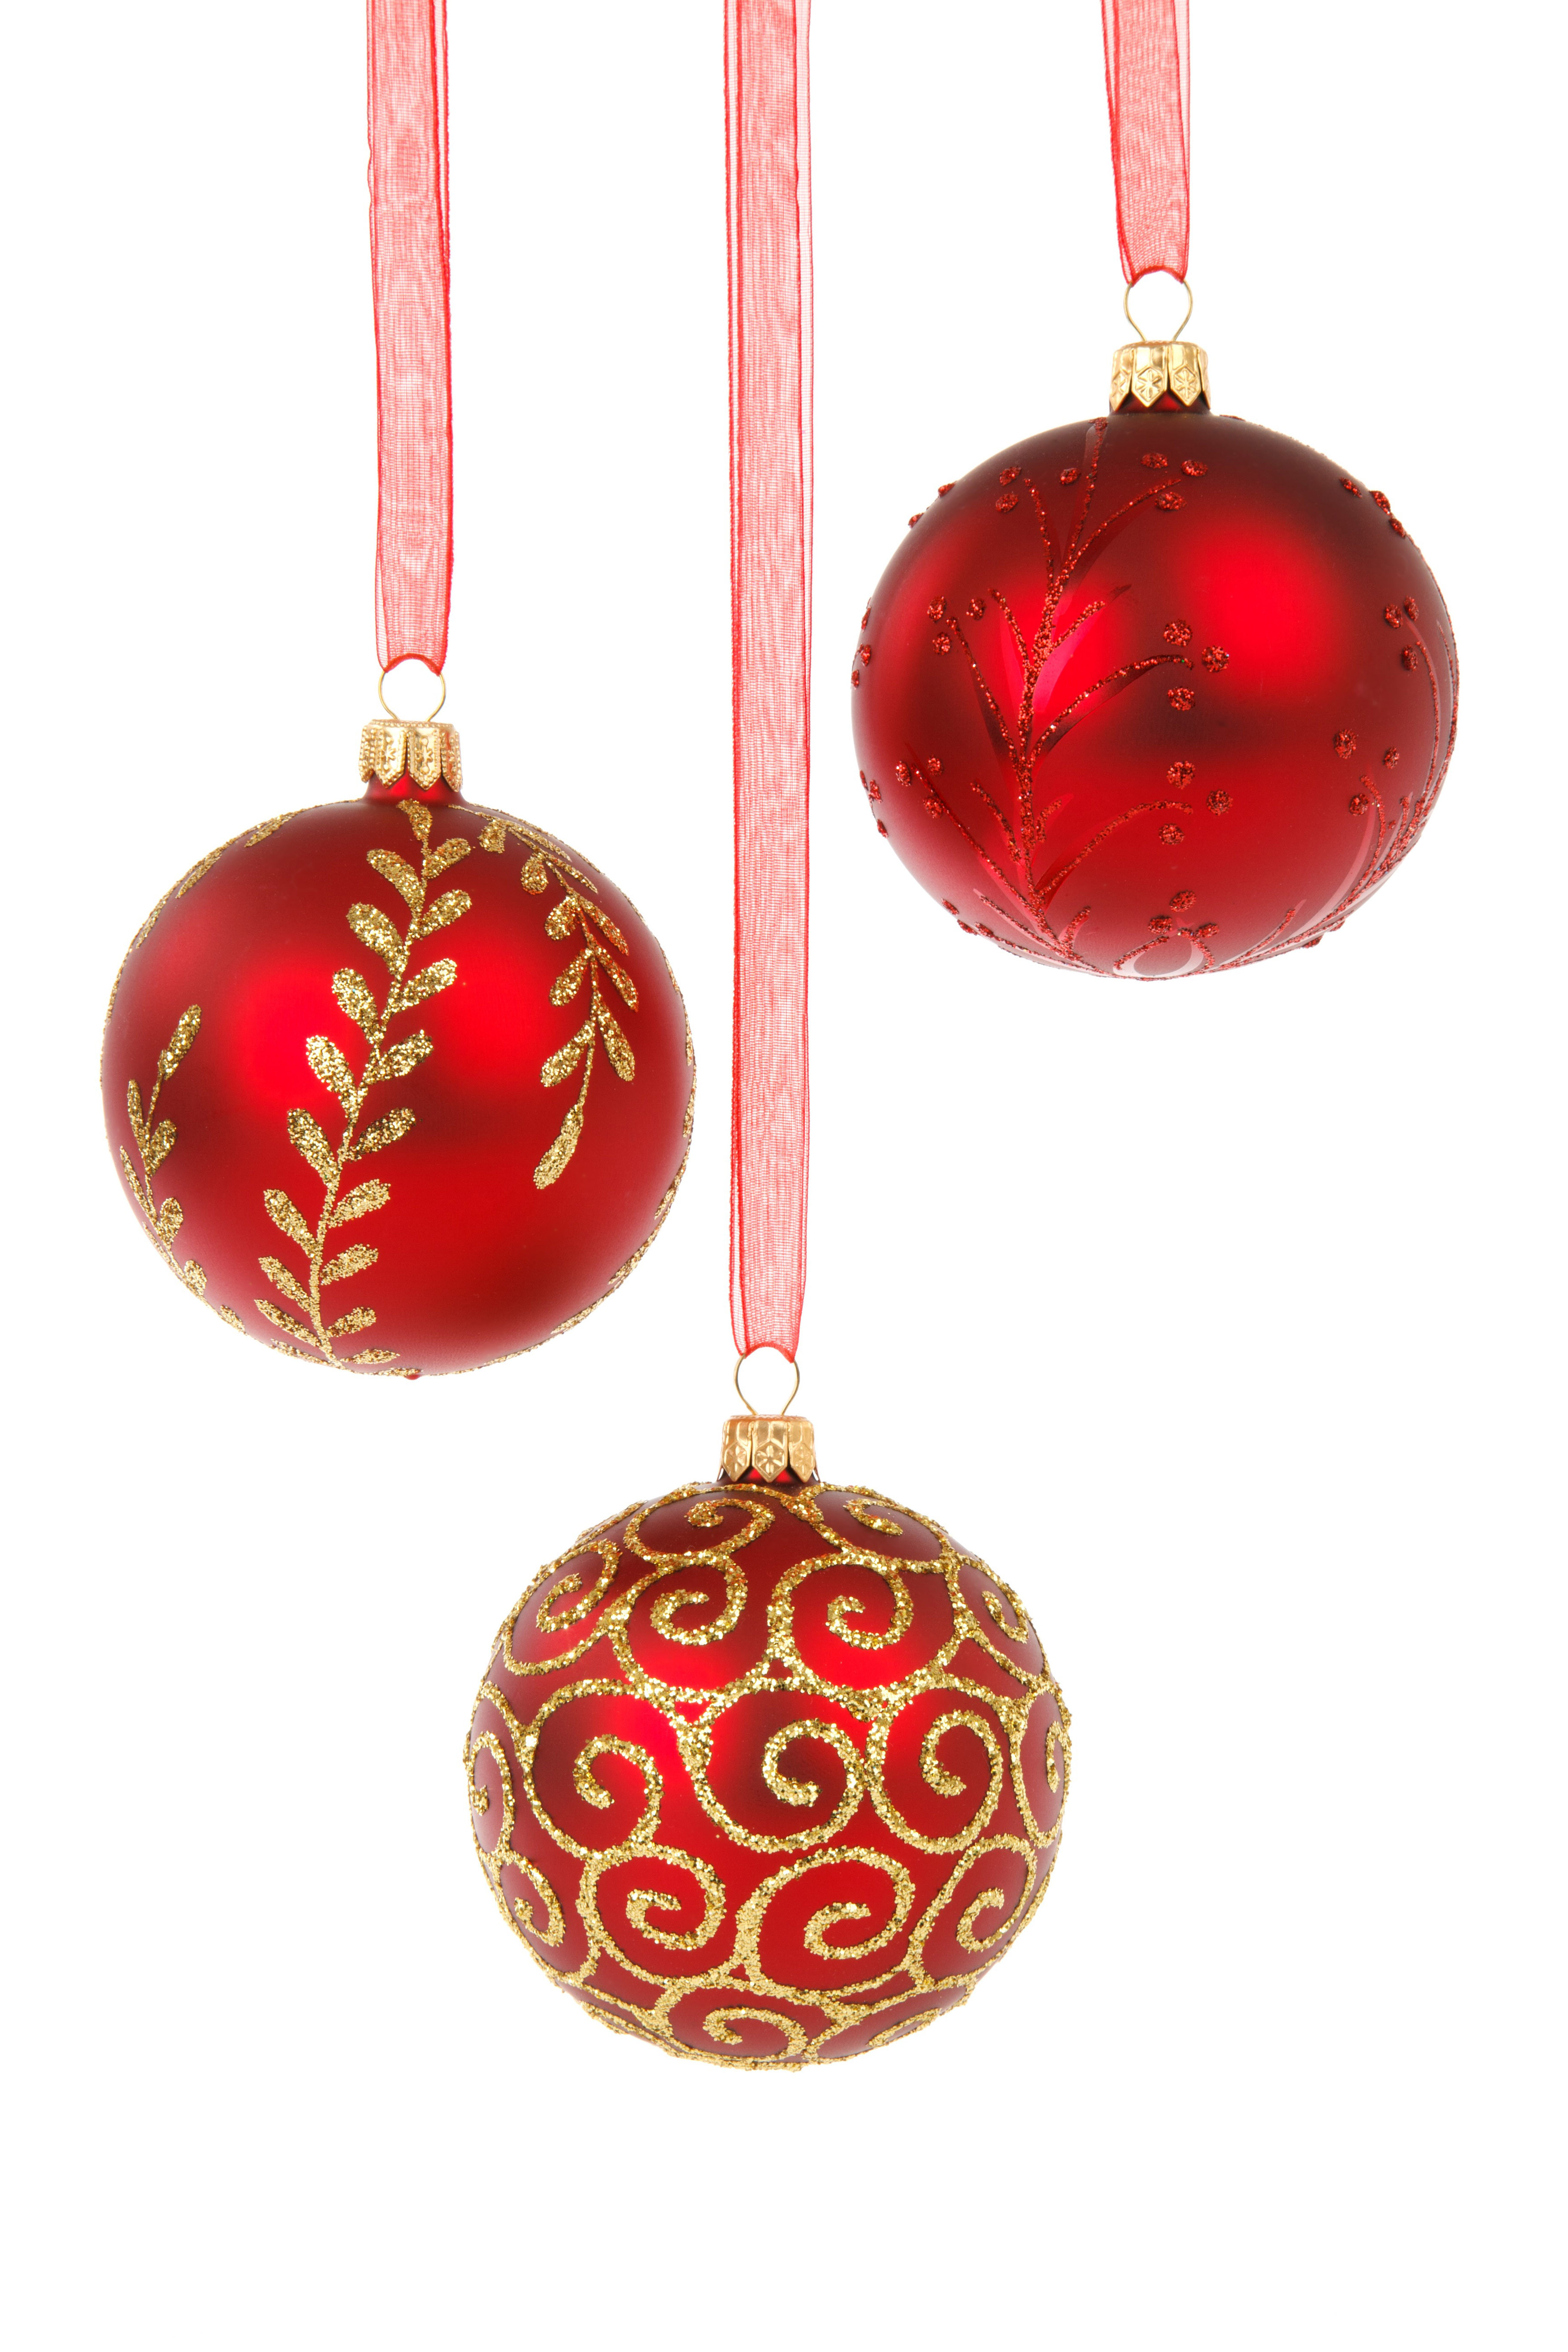 Christmas Ball ornaments Inspirational 15 assorted Christmas ornaments On A White Background Of Charming 42 Pictures Christmas Ball ornaments